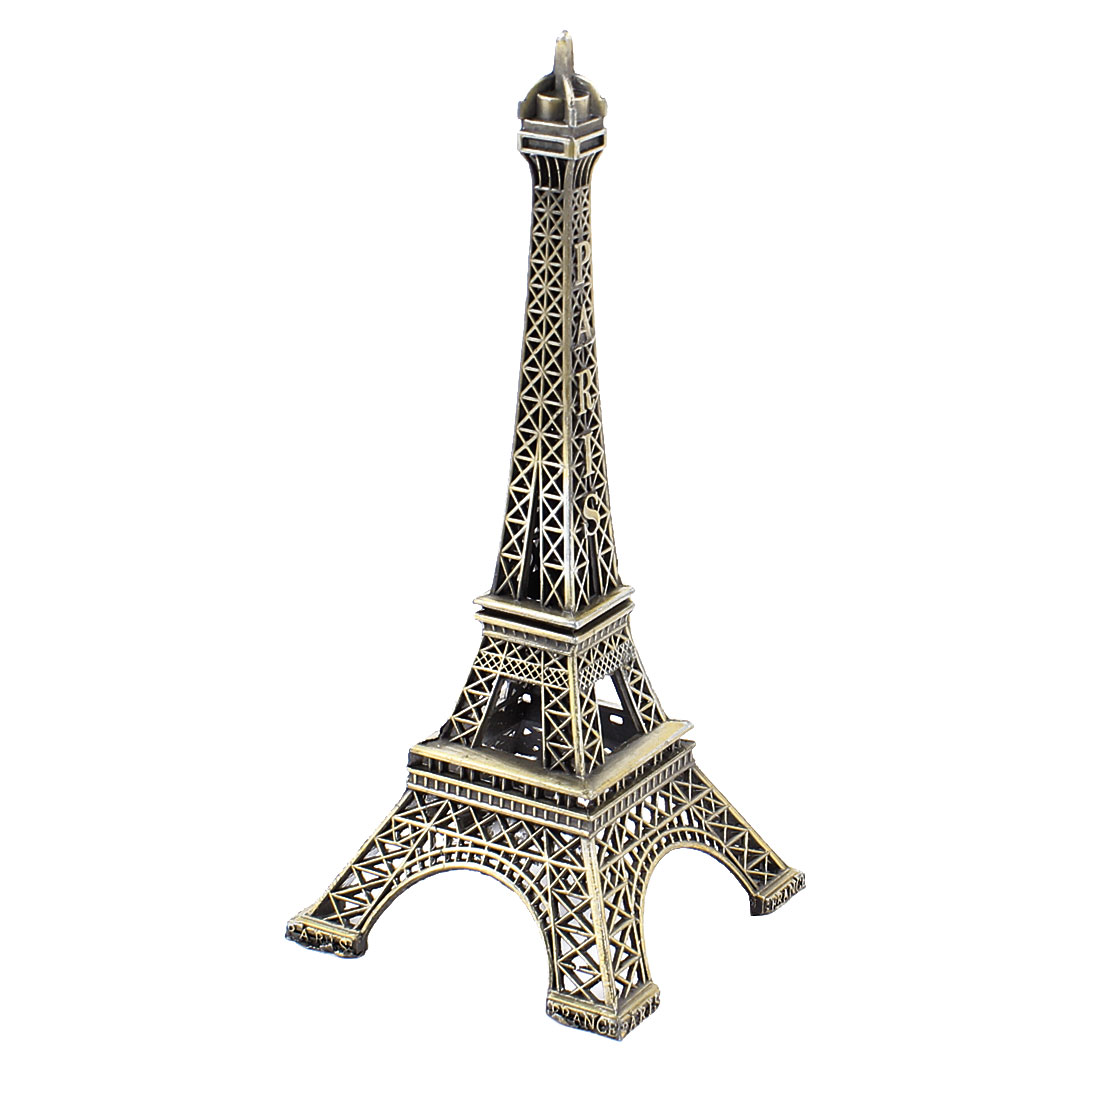 Bronze Tone 13cm High Metallic Paris Eiffel Tower Model Home Decoration